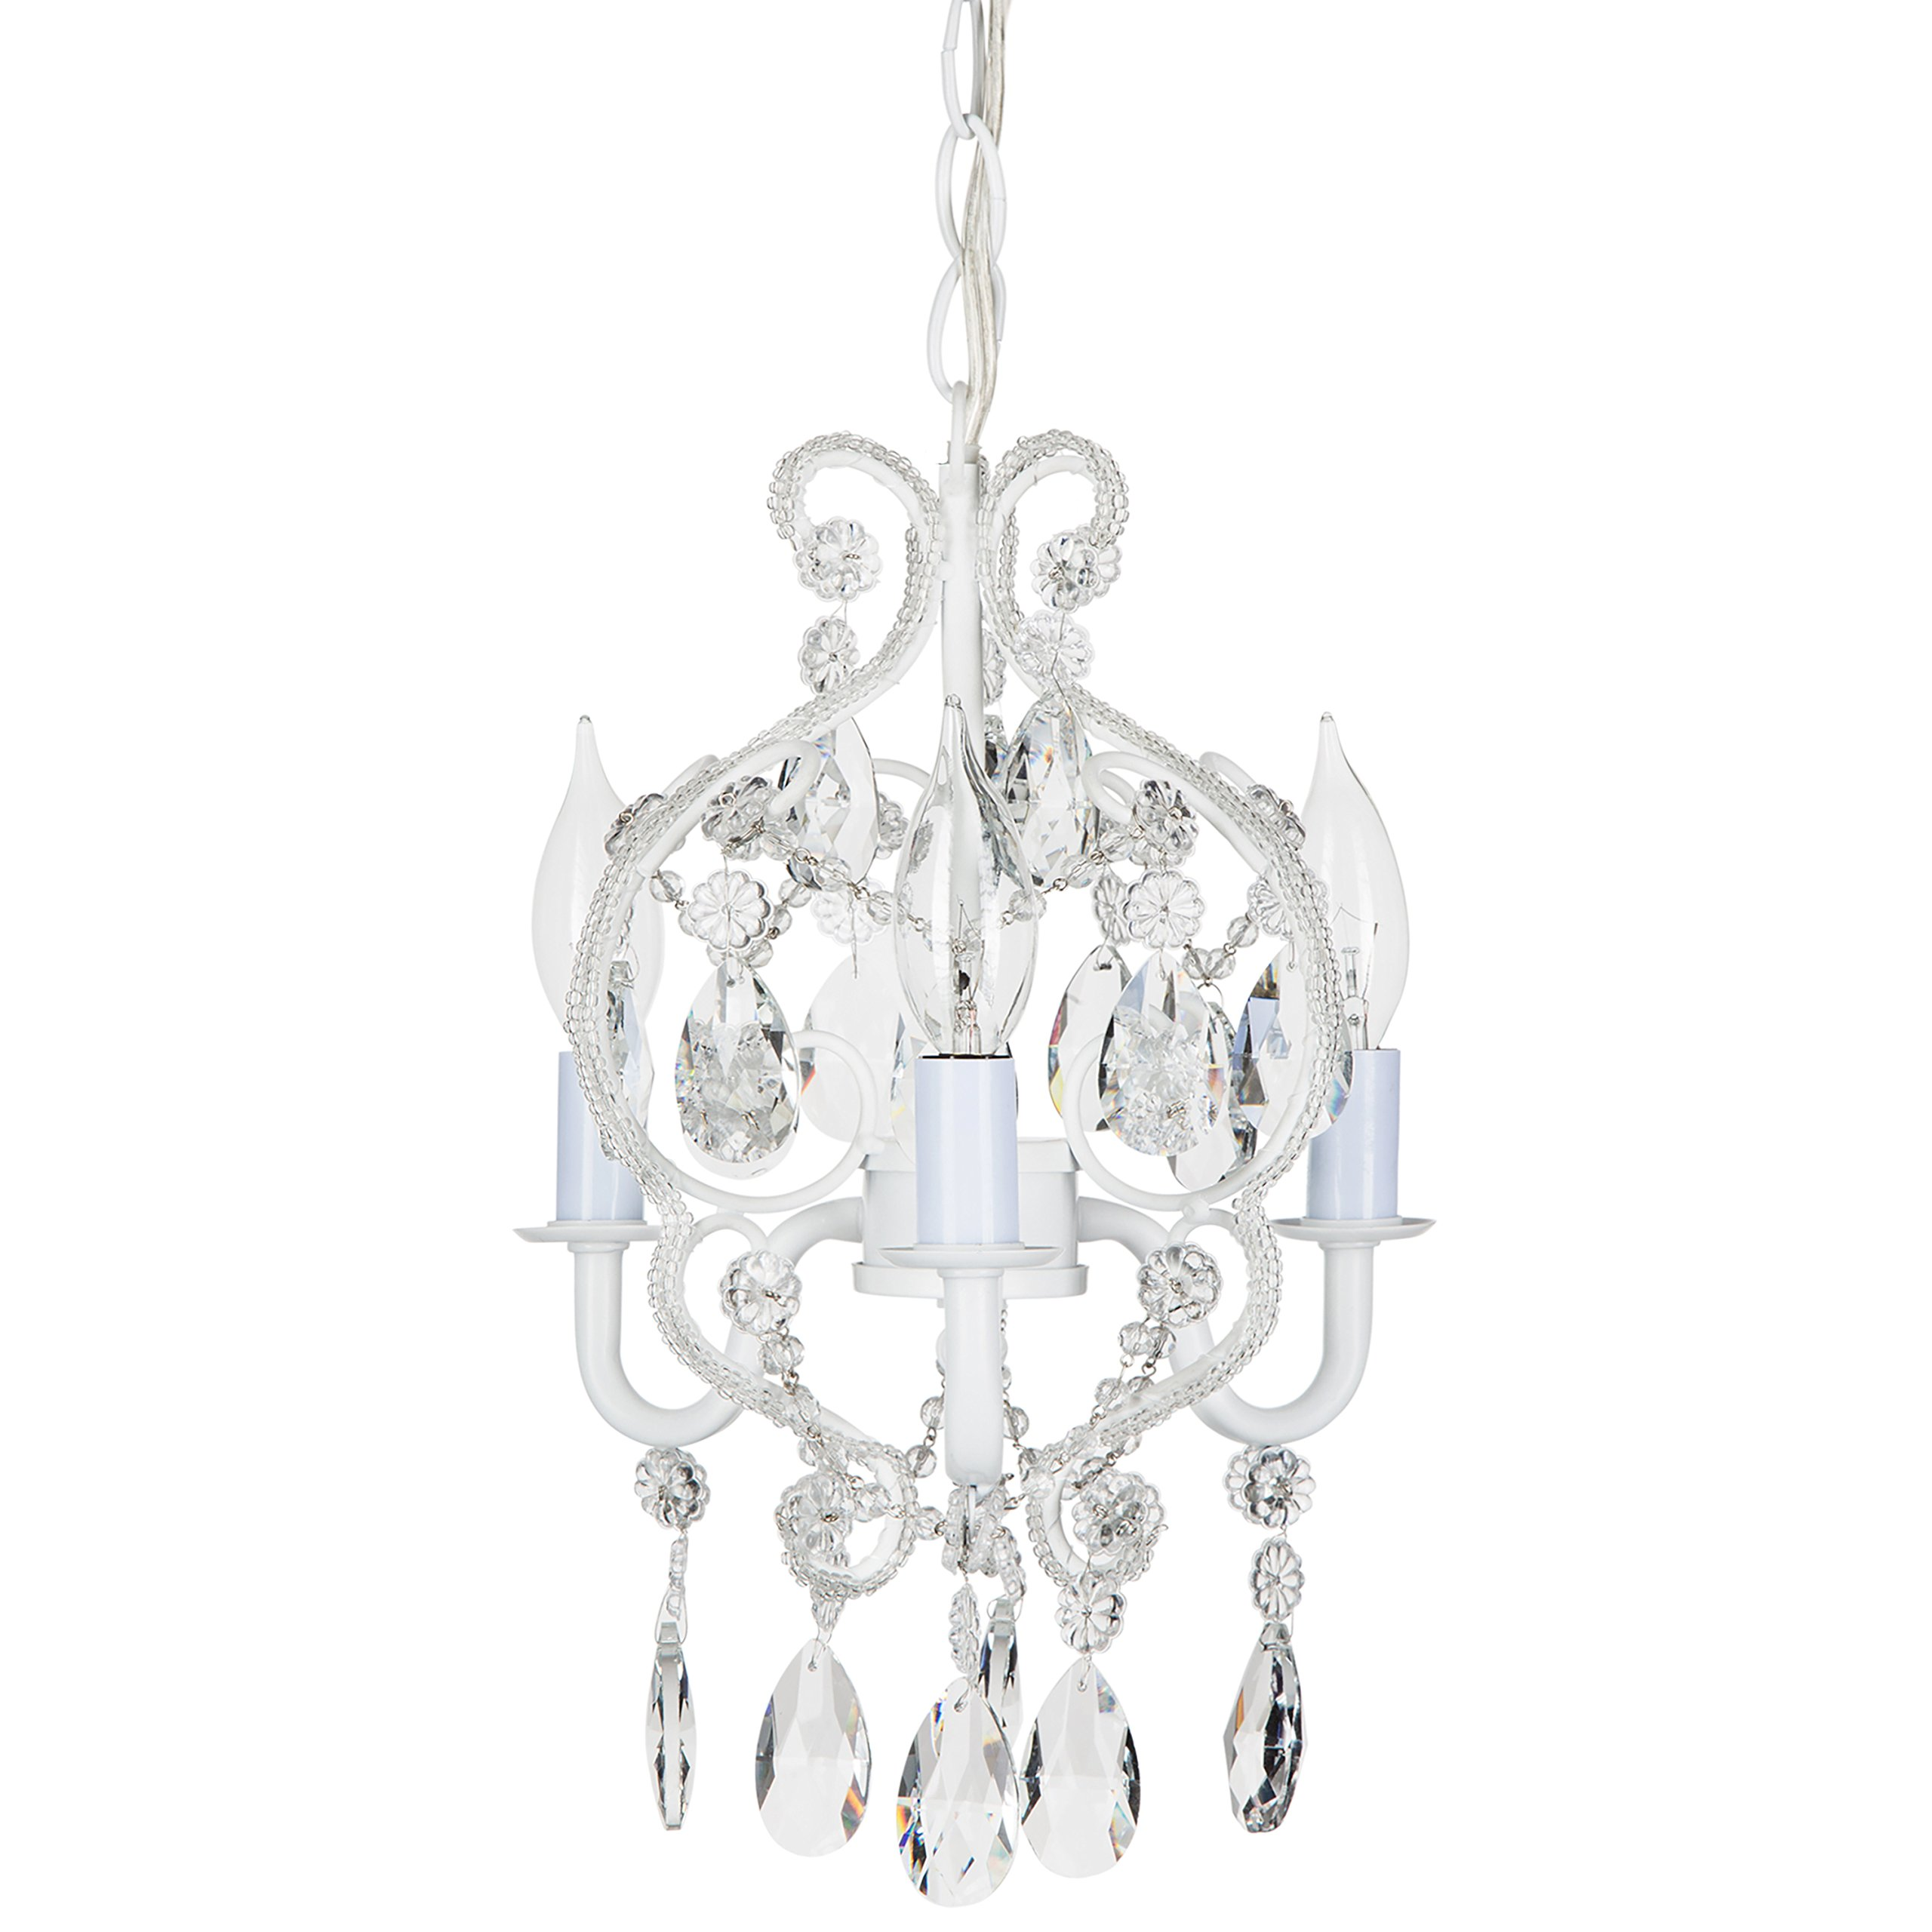 'Tiffany Collection' Mini Crystal Swag Chandelier Lighting with 3 Lights, Nursery Kids Children Room, W8.5'' X H10.5''